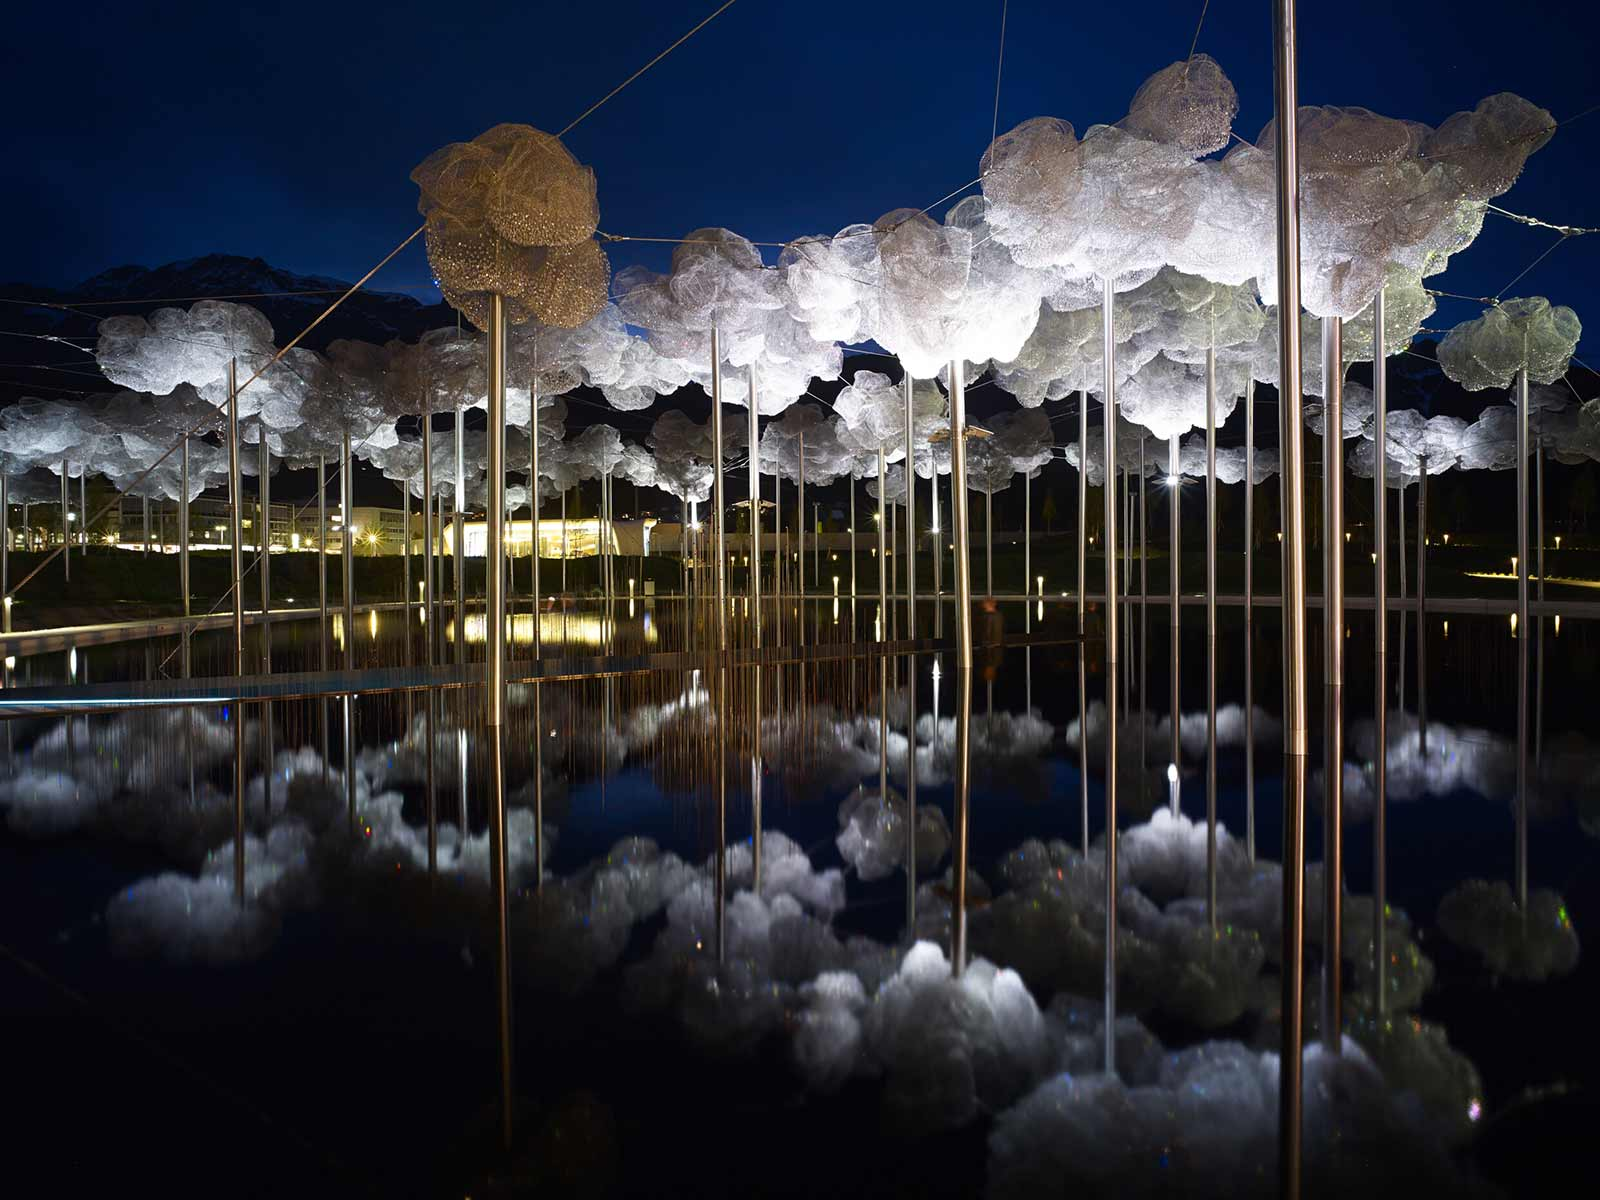 Crystal Cloud at Swarovski Crystal Worlds